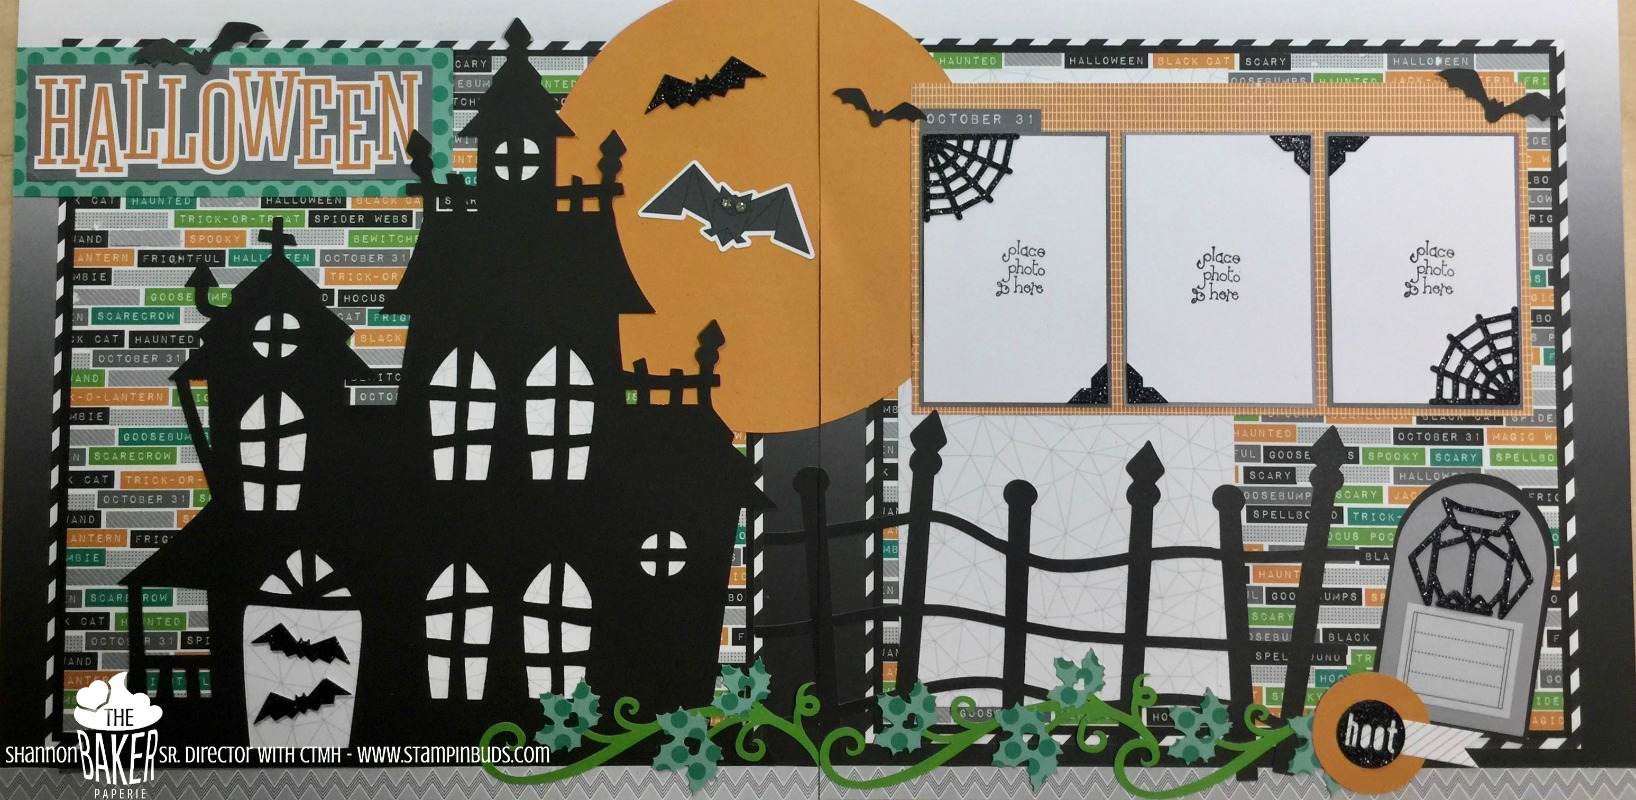 A popular Halloween layout gets a facelift